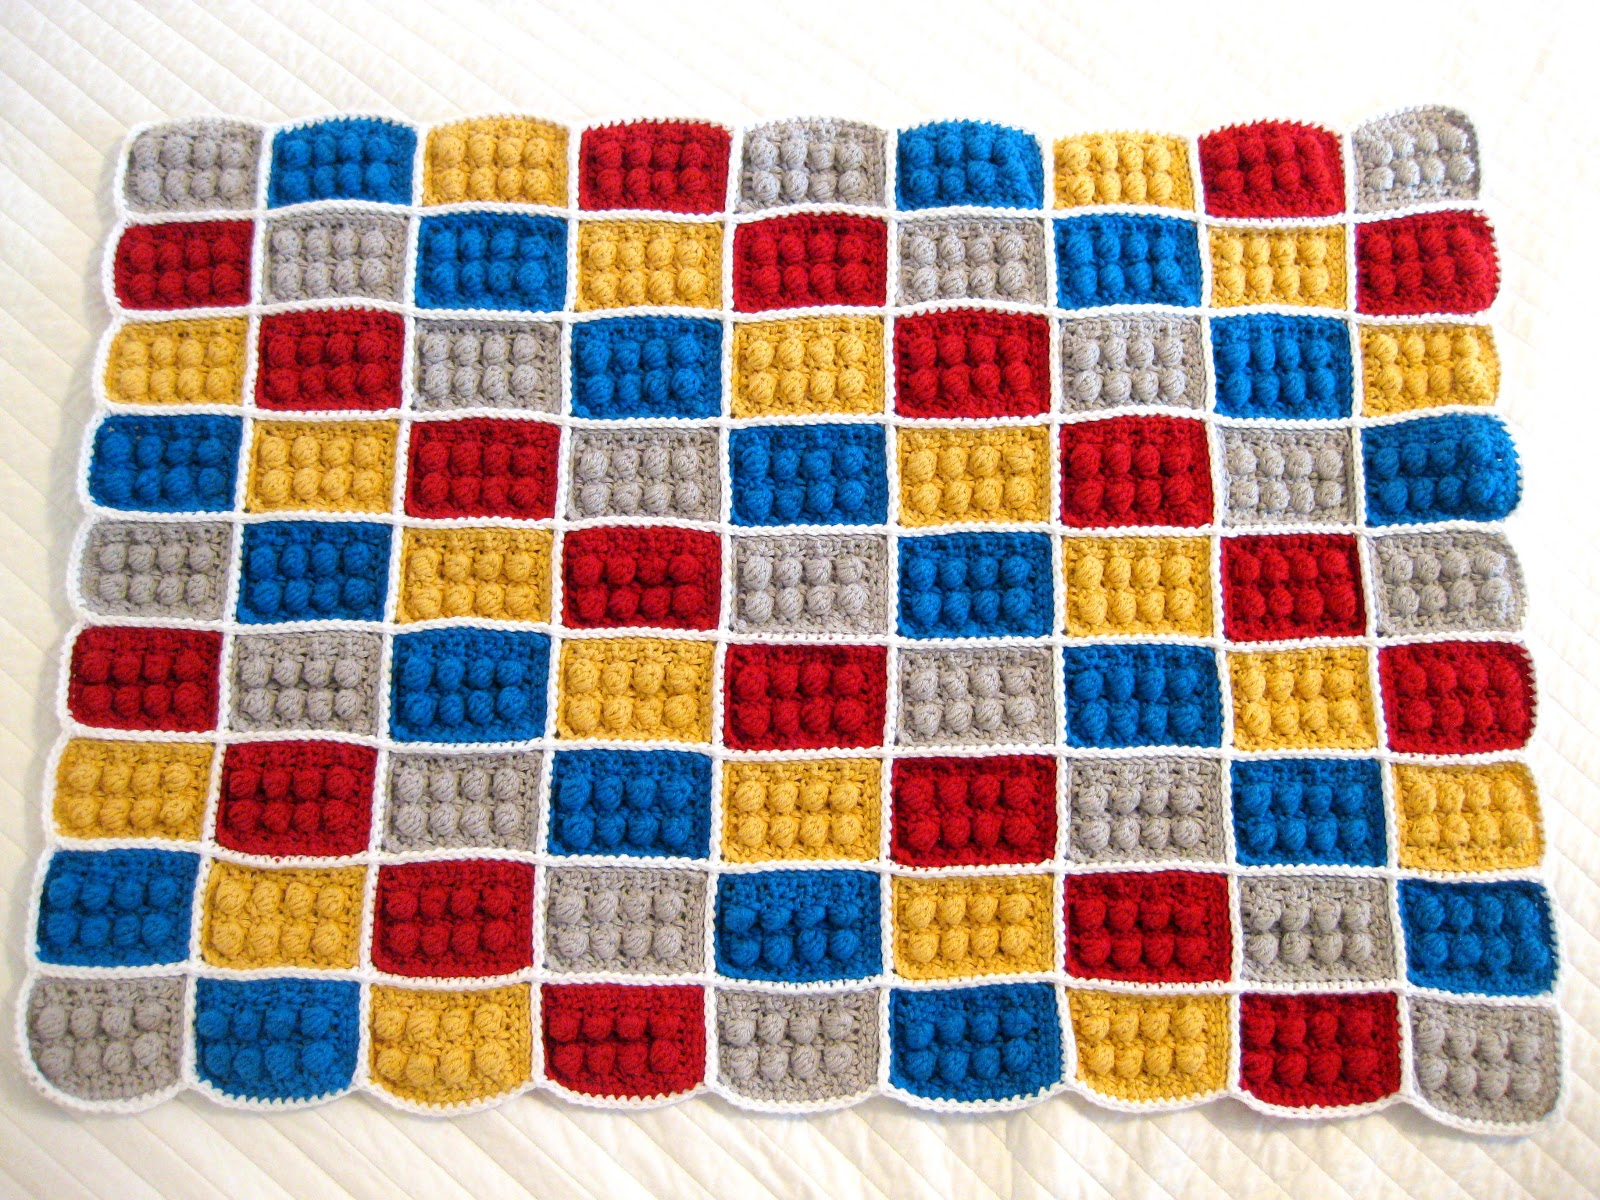 Crochet Lego Blanket : All Things Bright and Beautiful: Crochet LEGO Blanket Tutorial